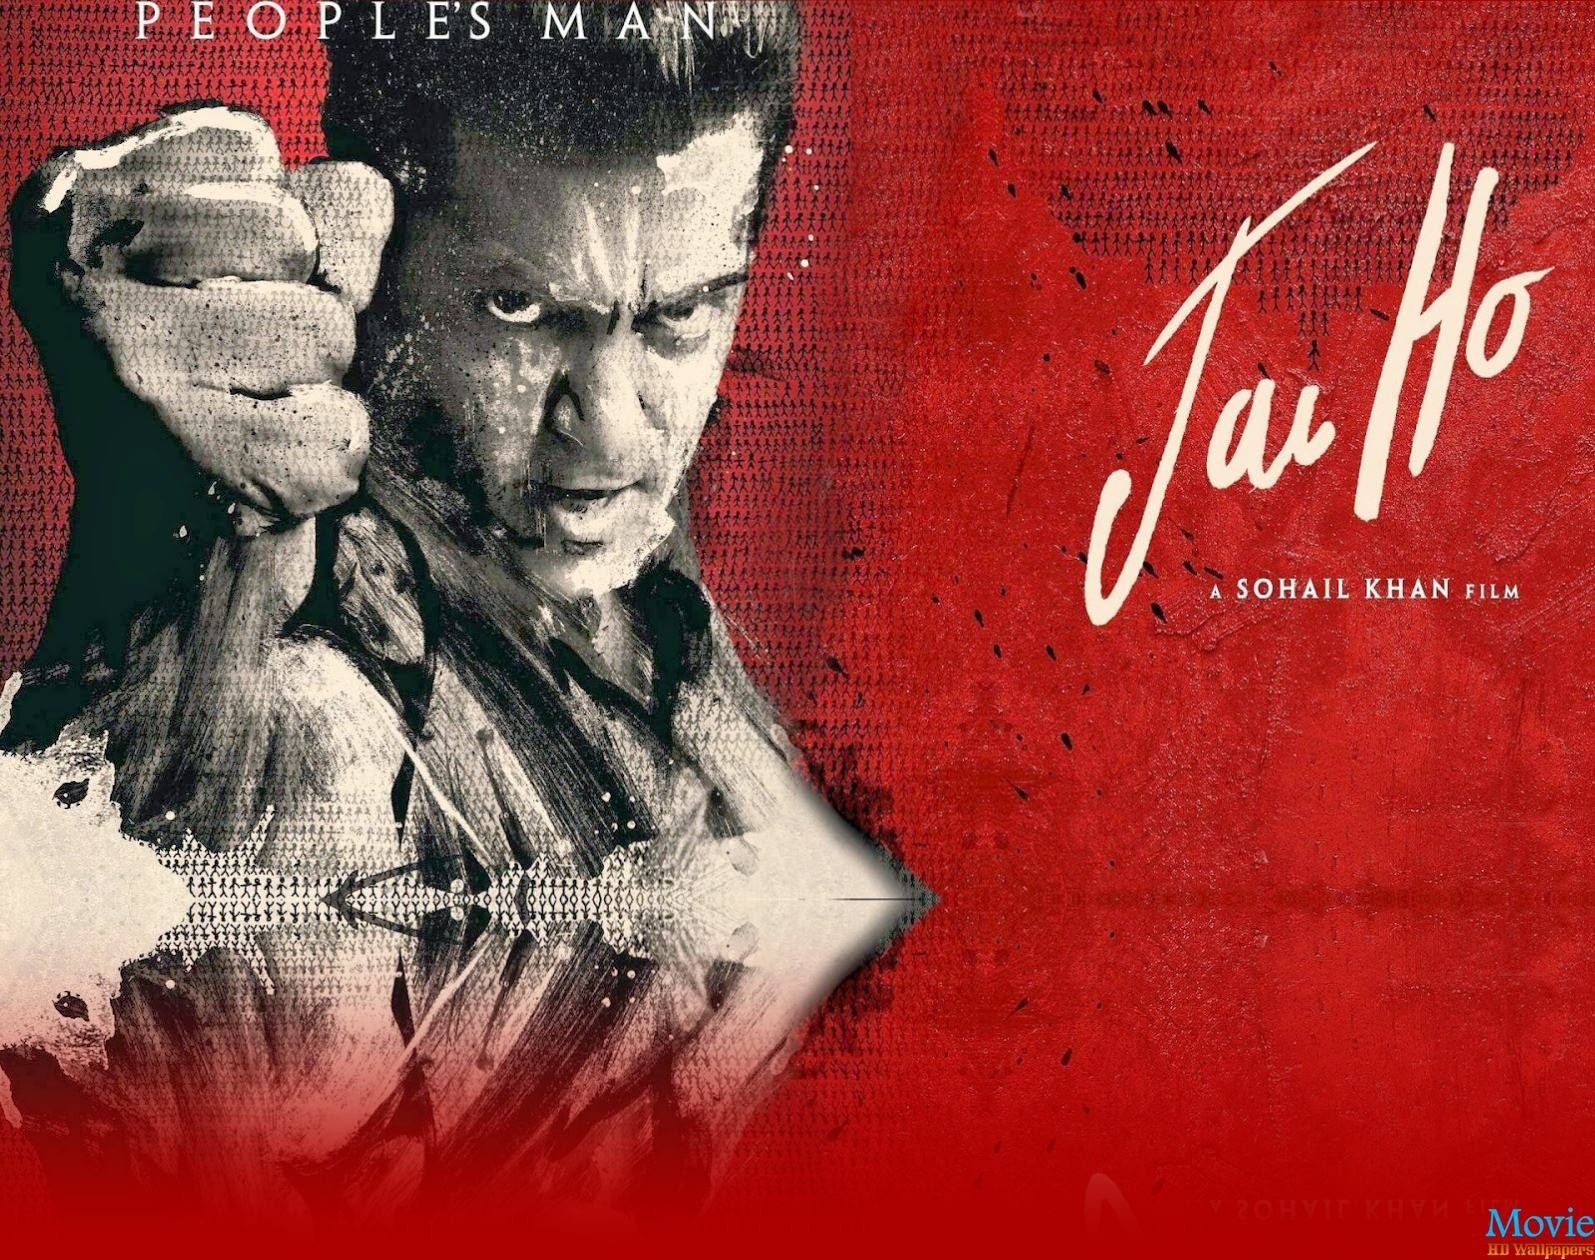 jai ho Check out the latest movie review, trailers, story, plot, music videos, songs, wallpapers, cast and crew details of jai ho hindi movie on gomolocom.